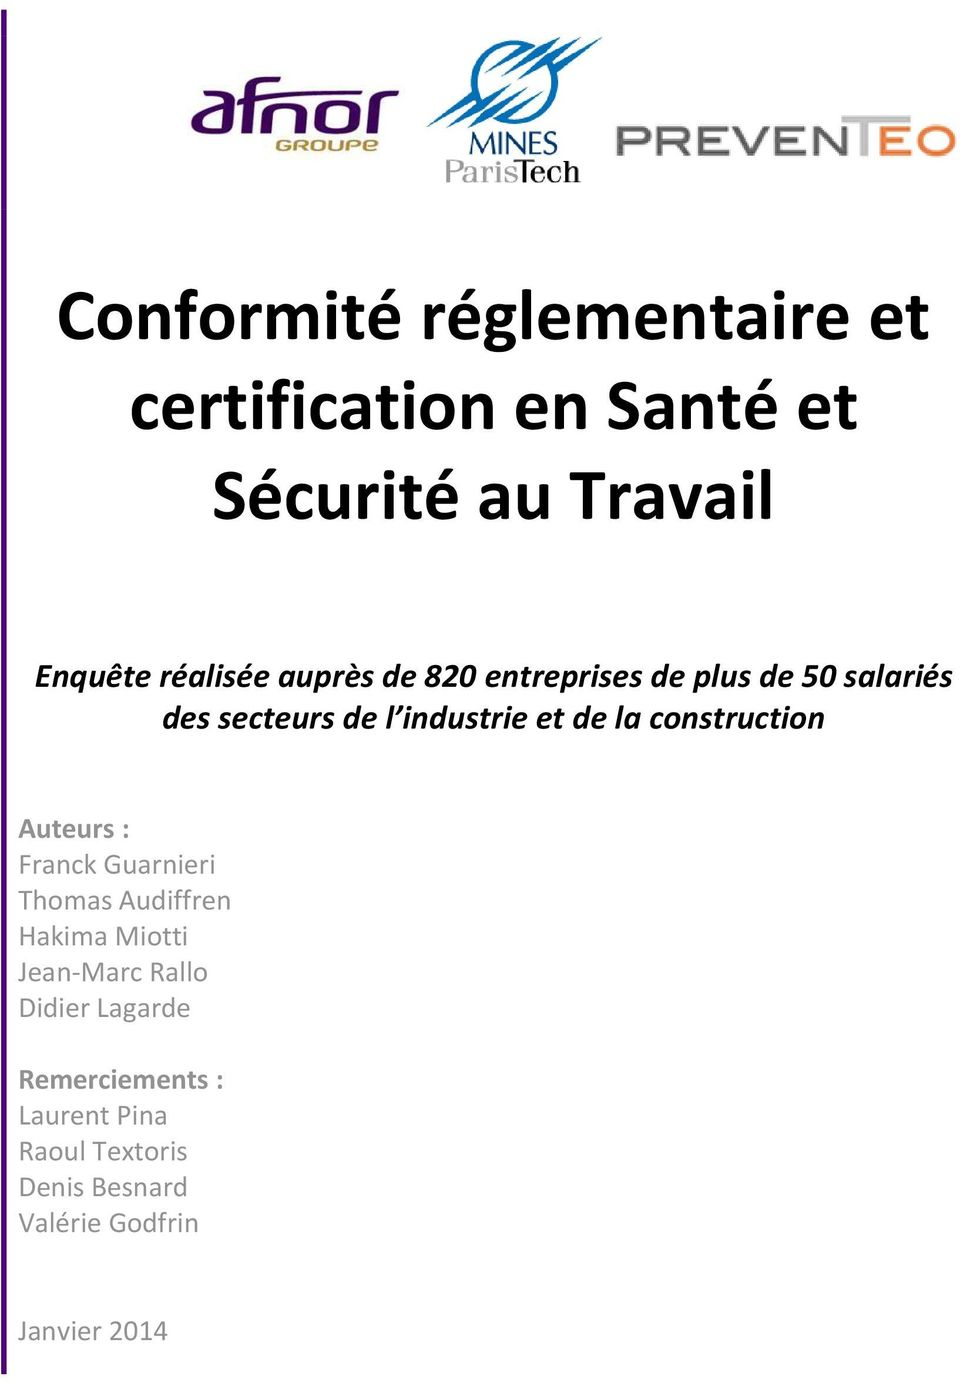 construction Auteurs : Franck Guarnieri Thomas Audiffren Hakima Miotti Jean-Marc Rallo